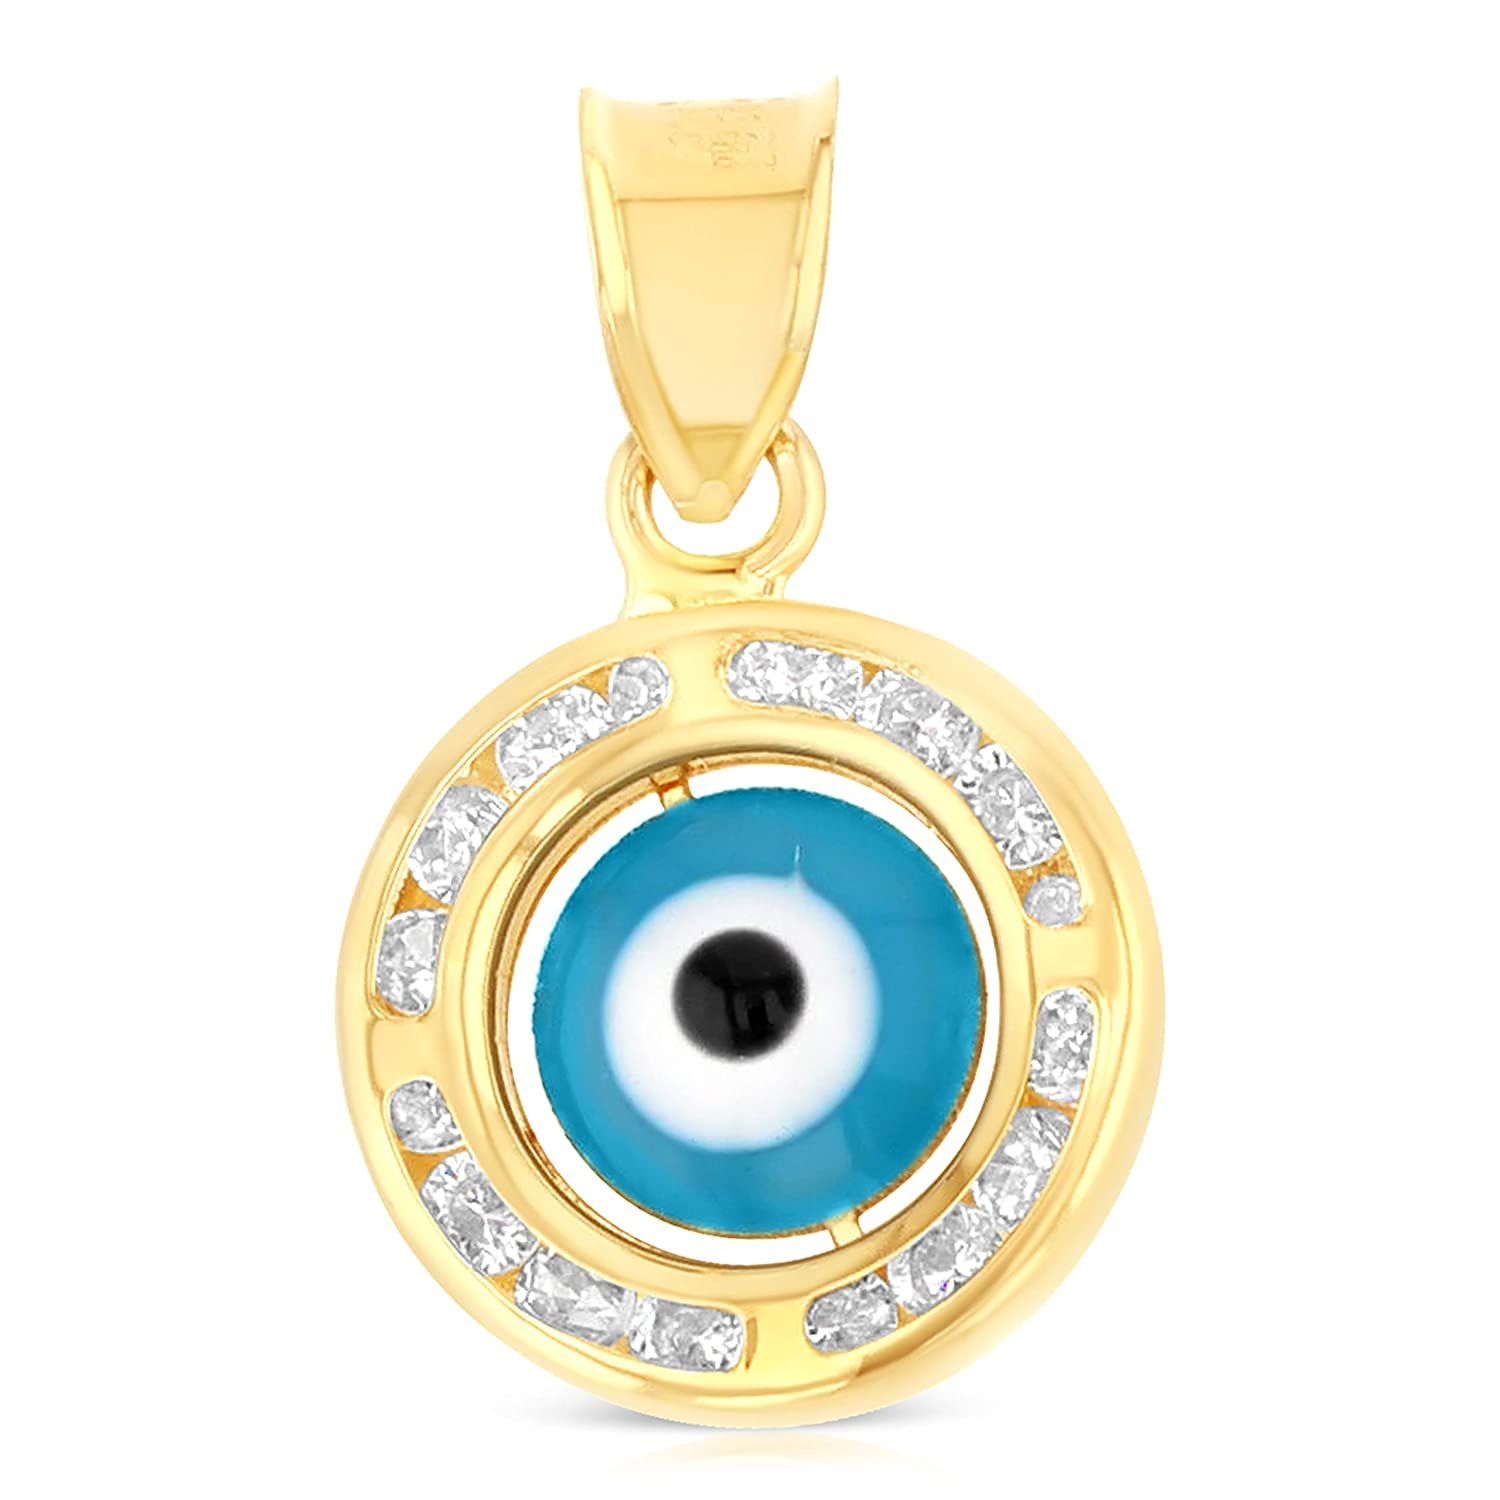 Ioka 14K Tri Color Gold Cubic Zirconia CZ Evil Eye Charm Pendant For Necklace or Chain IG-01-100-1332